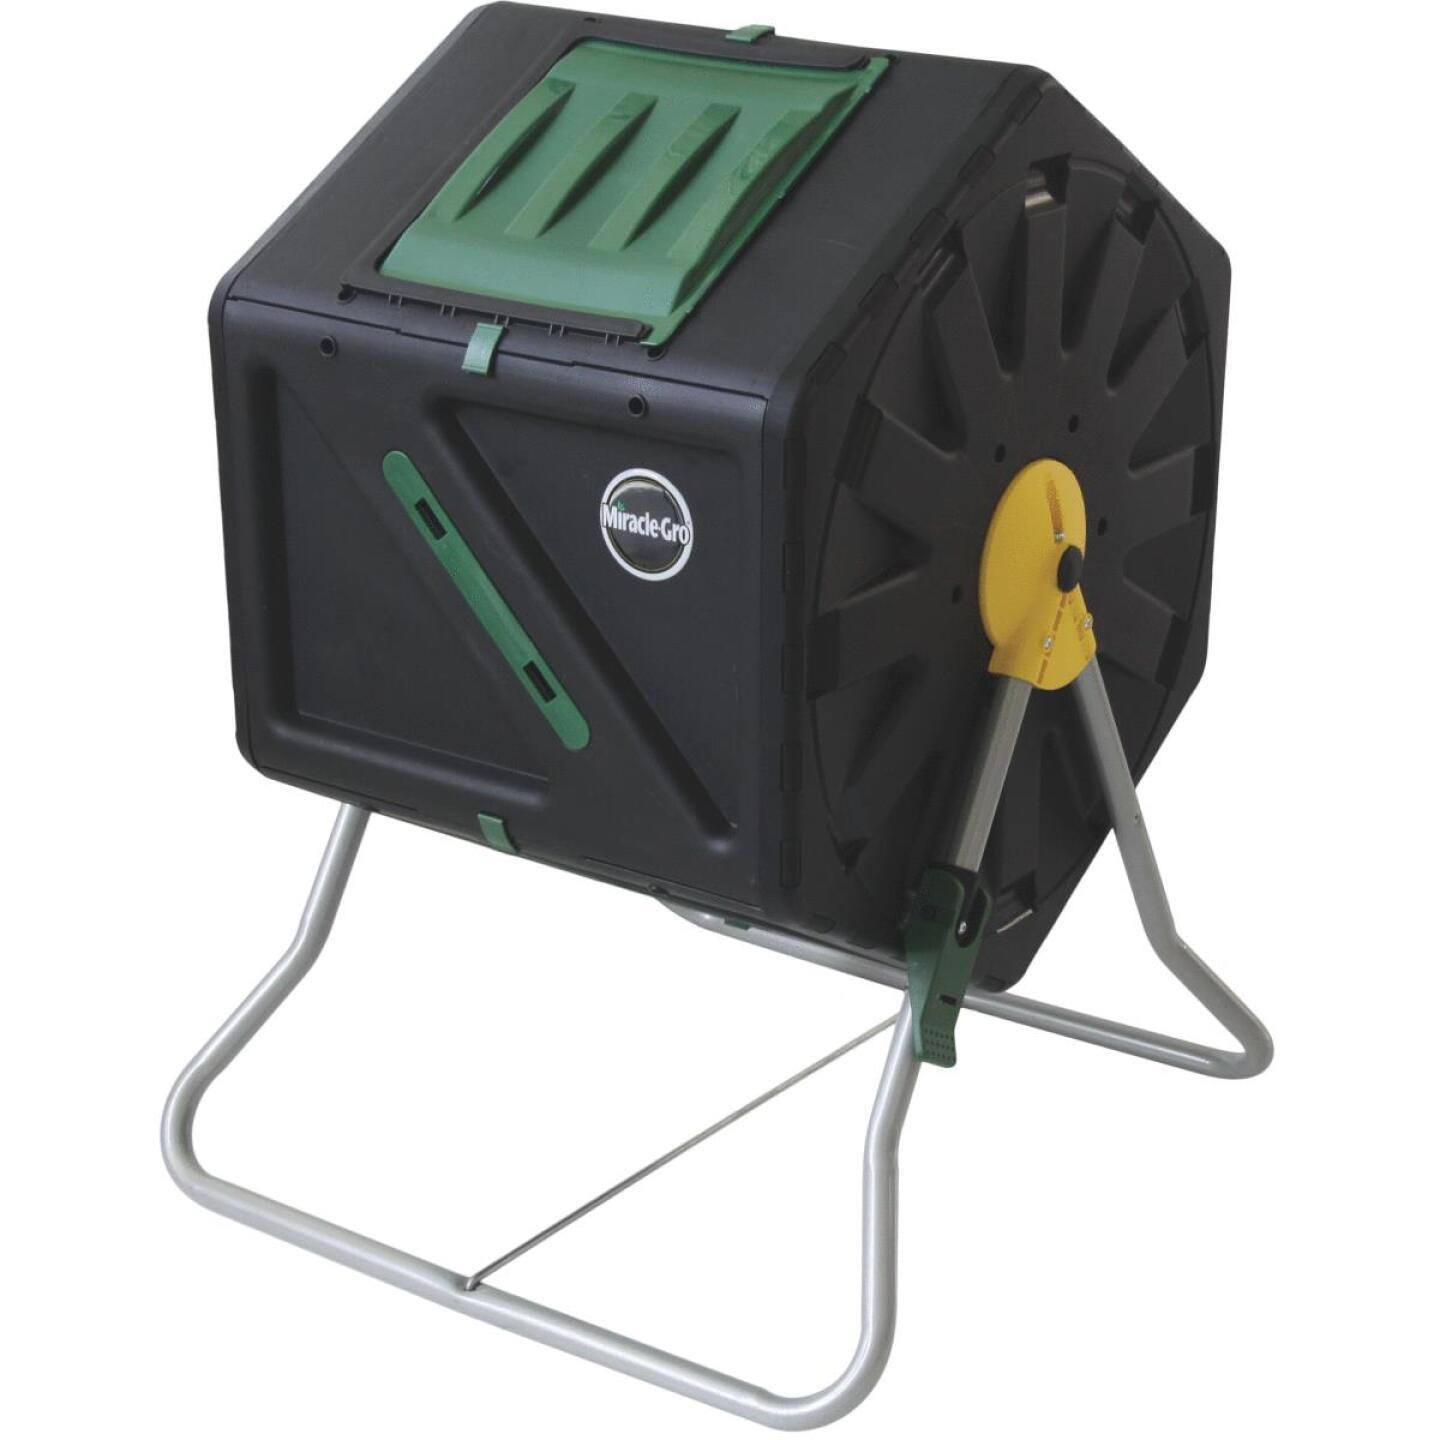 Miracle-Gro Tumbling Composter (28-Gallon) Image 1